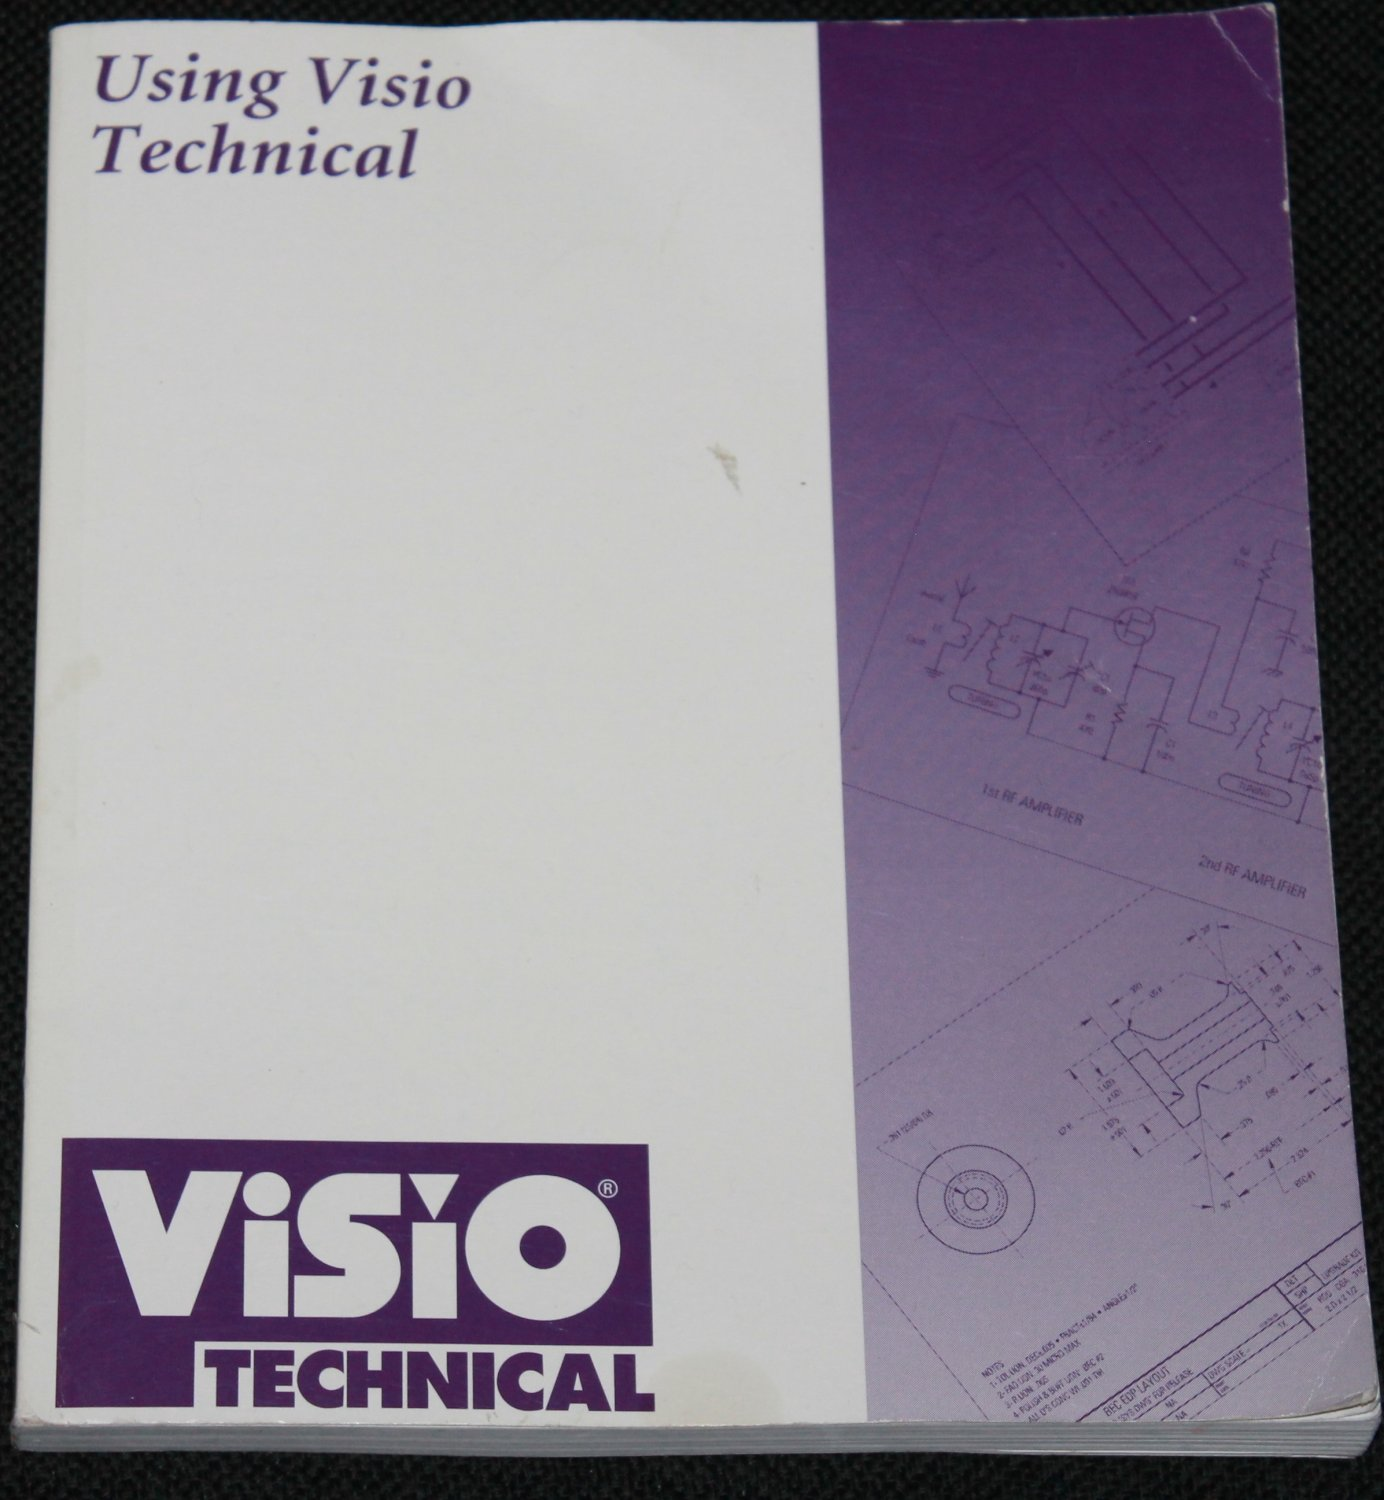 Using Visio Technical Version 4.1